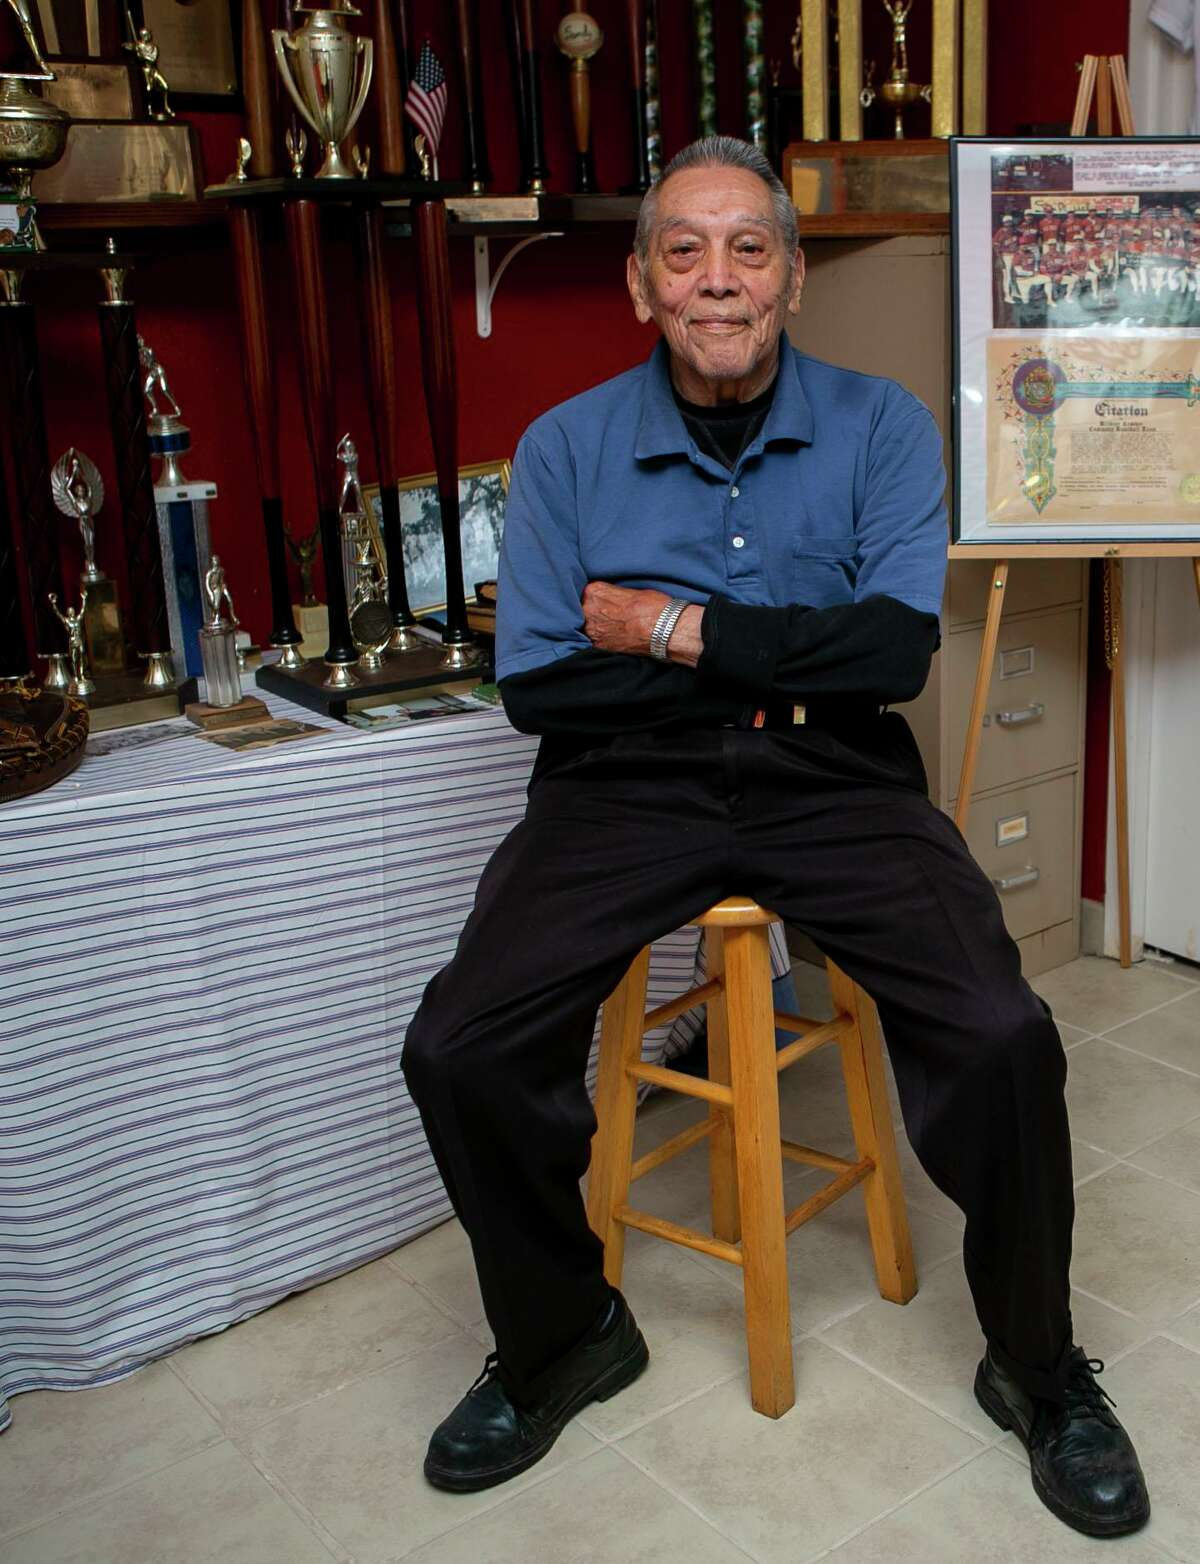 Willie Doria, 95, is one of the last living stars of the Spanish American Baseball League, poses at home of Joe Sanchez, a lifelong friend and the former manager of the league, in San Antonio, Texas on Nov. 26, 2019.